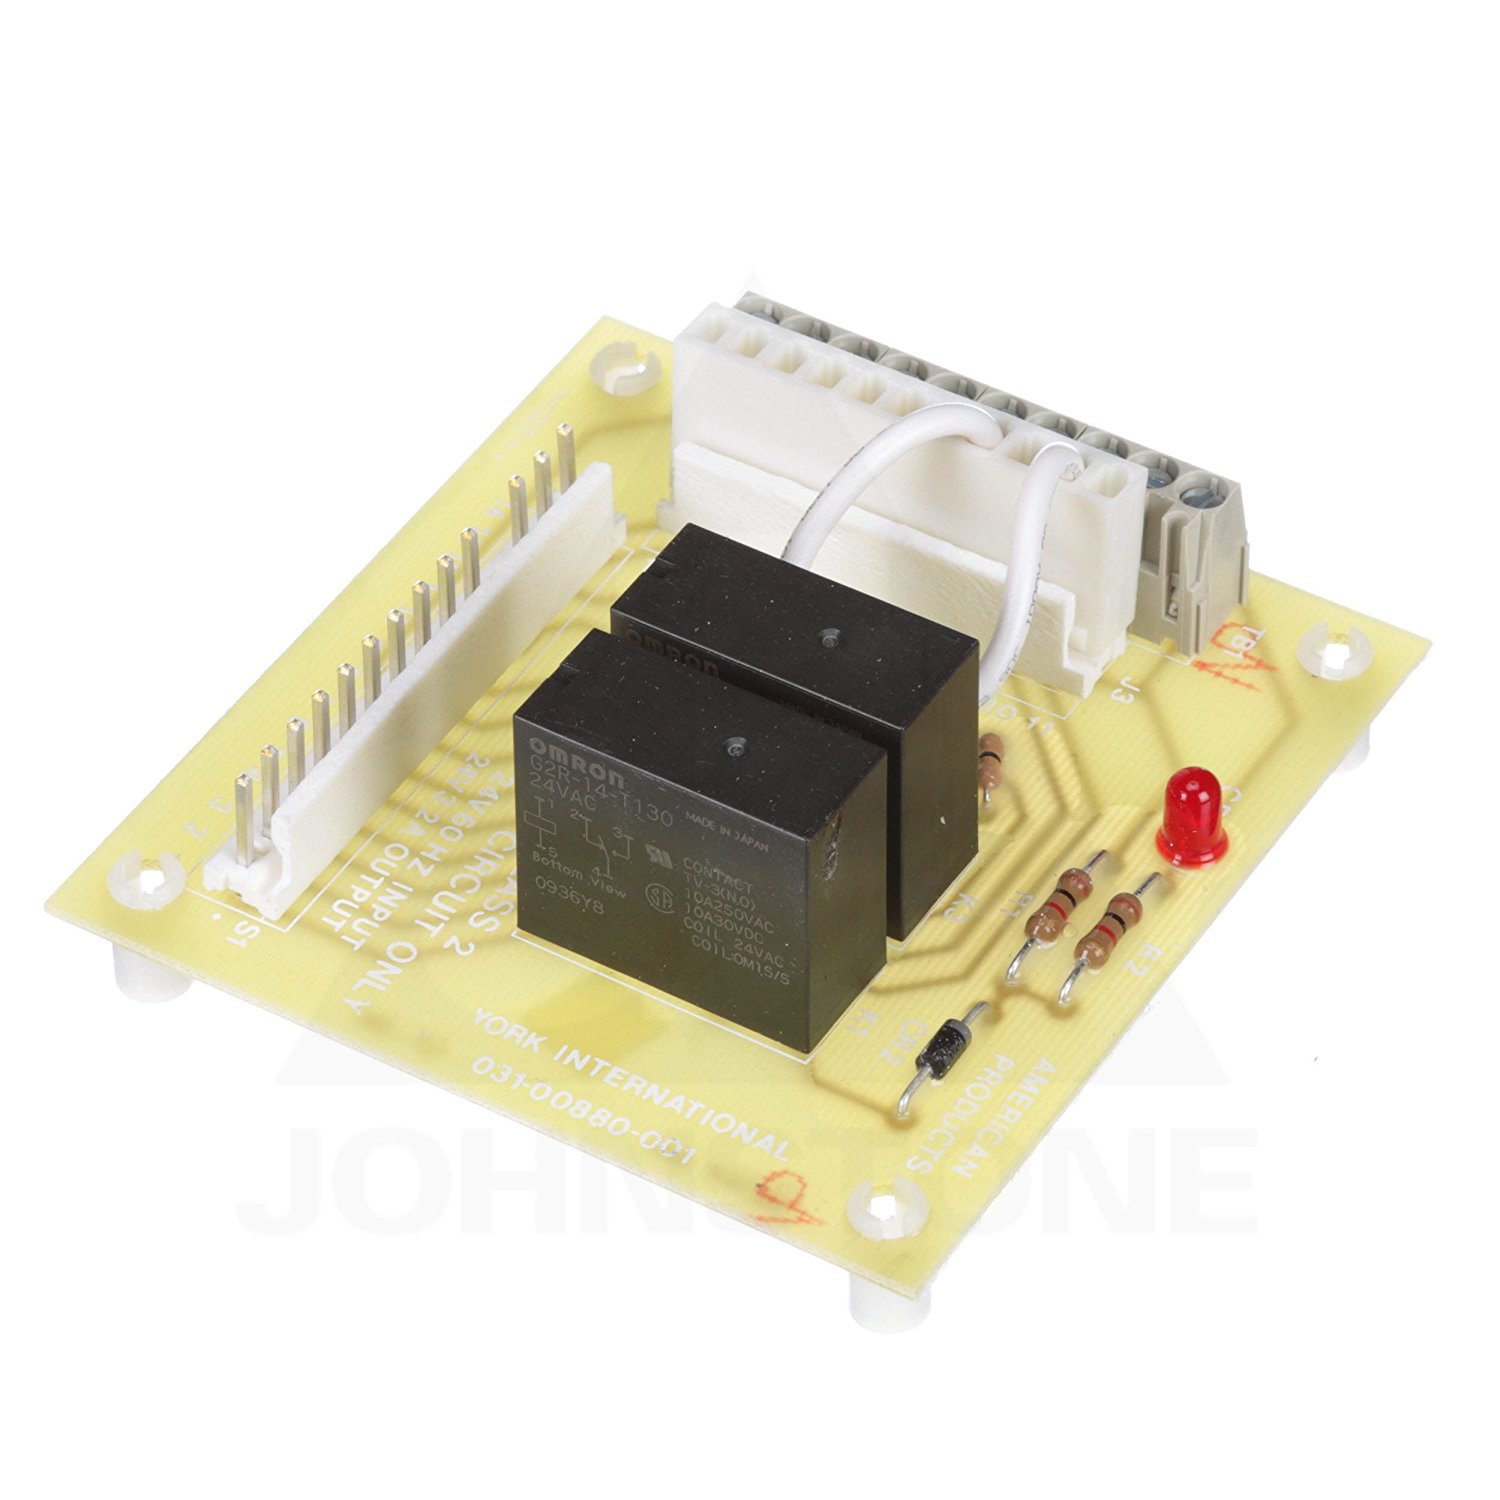 Source 1 CIRCUIT RELAY BOARD #S1-03100880001